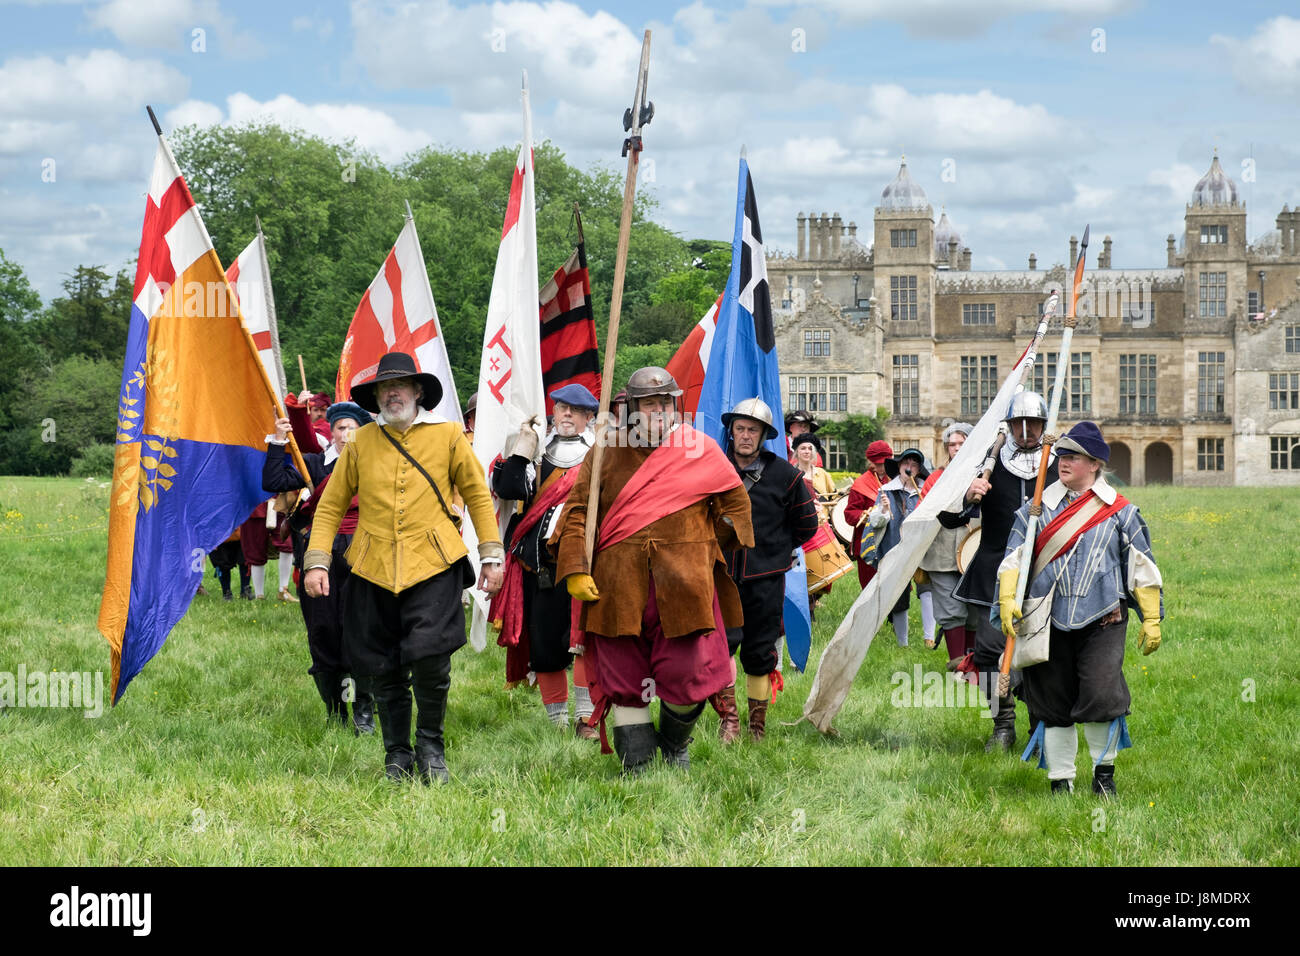 Members of the sealed knot performing a re-enactment at Charlton Park, near Malmesbury, Wiltshire, UK - Stock Image